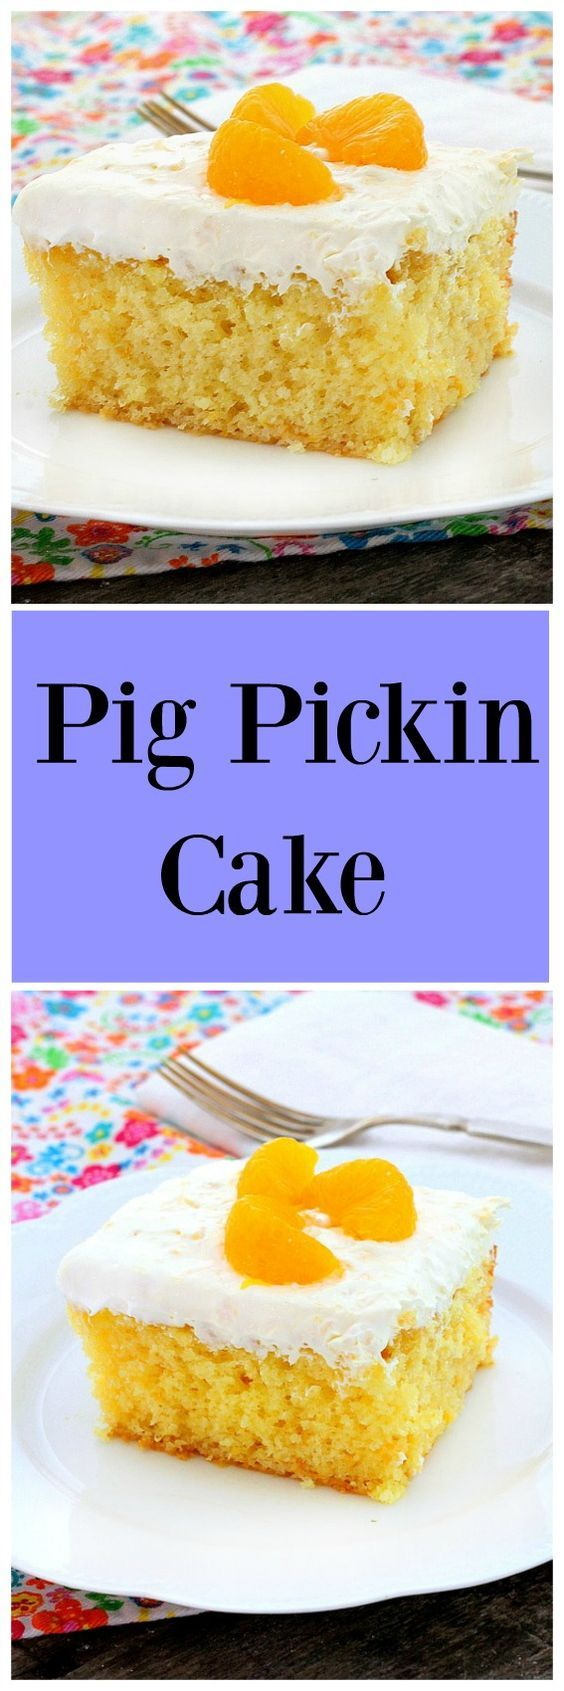 Pig Pickin Cake is so easy to make and absolutely delicious!  It's the perfect cool summer dessert for holidays and family get-togethers!